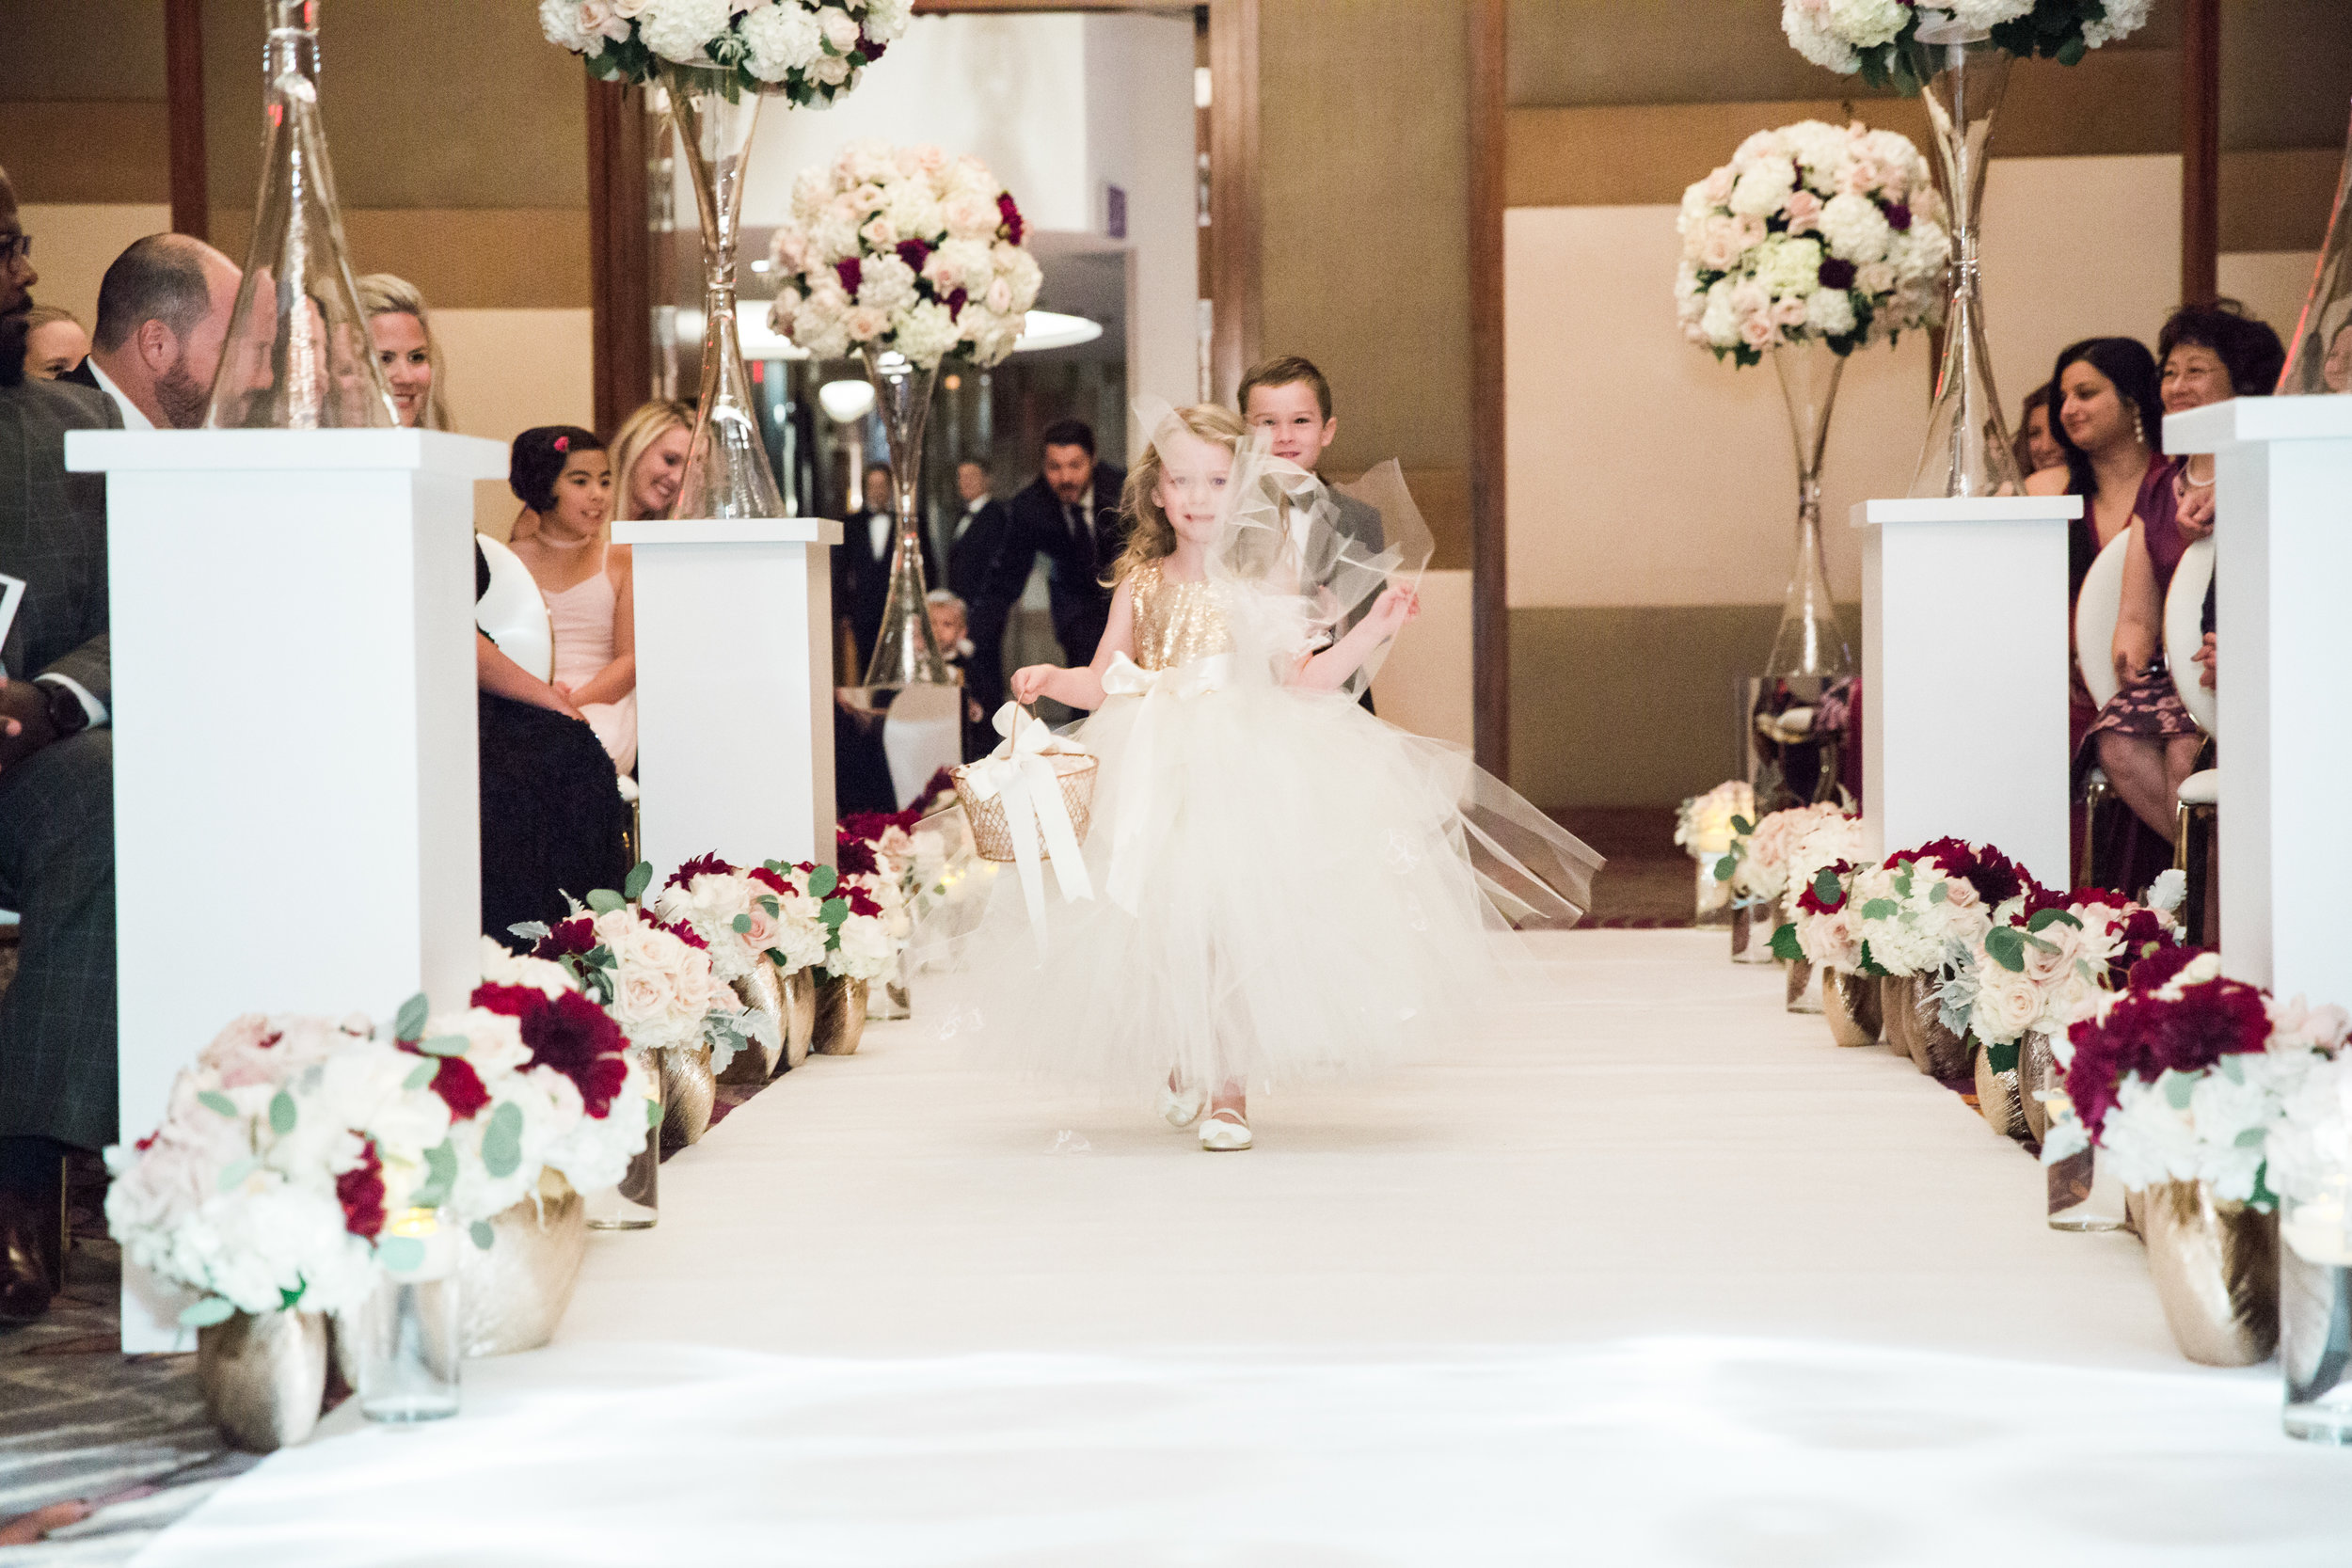 flower girl in ivory tulle and gold.Luxury wedding at the Mandarin Oriental with a color scheme of white, blush, and pops of wine red produced by Las Vegas Wedding Planner Andrea Eppolito with photos by Stephen Salazar Photography.